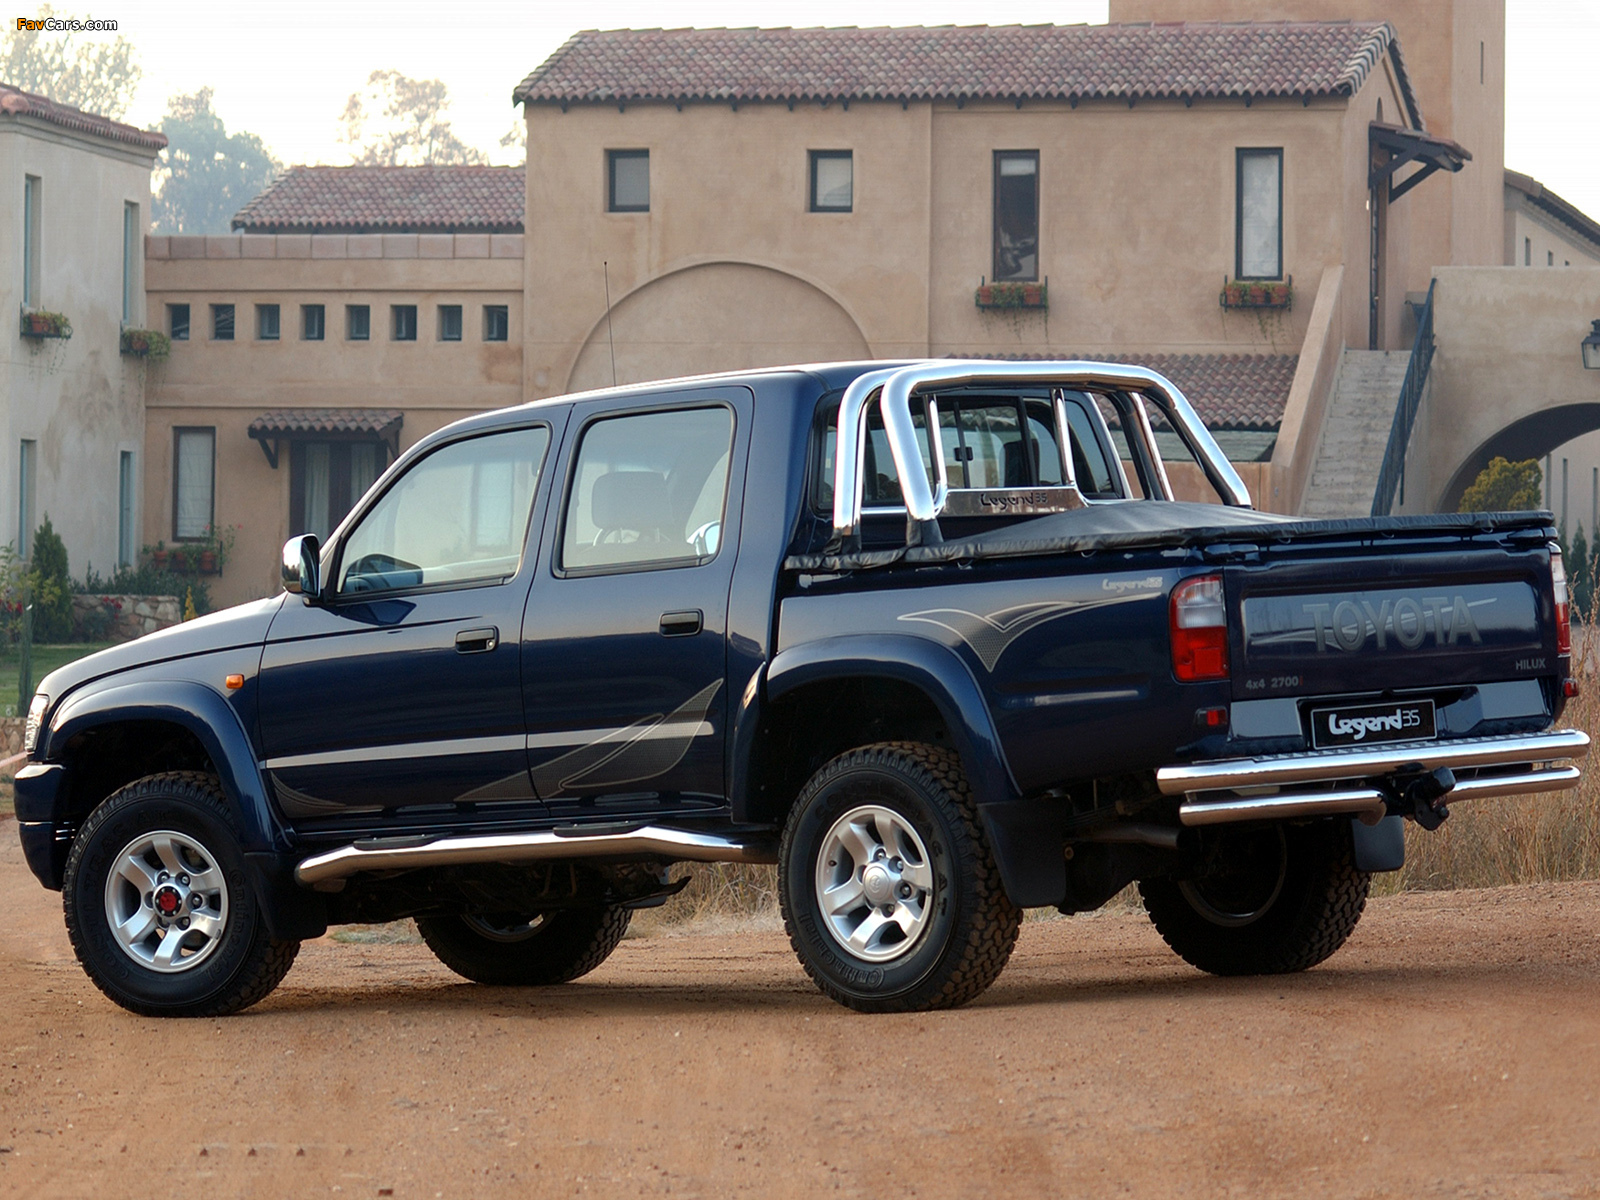 Pictures of Toyota Hilux 2700i Legend 35 Double Cab 2004 (1600x1200)